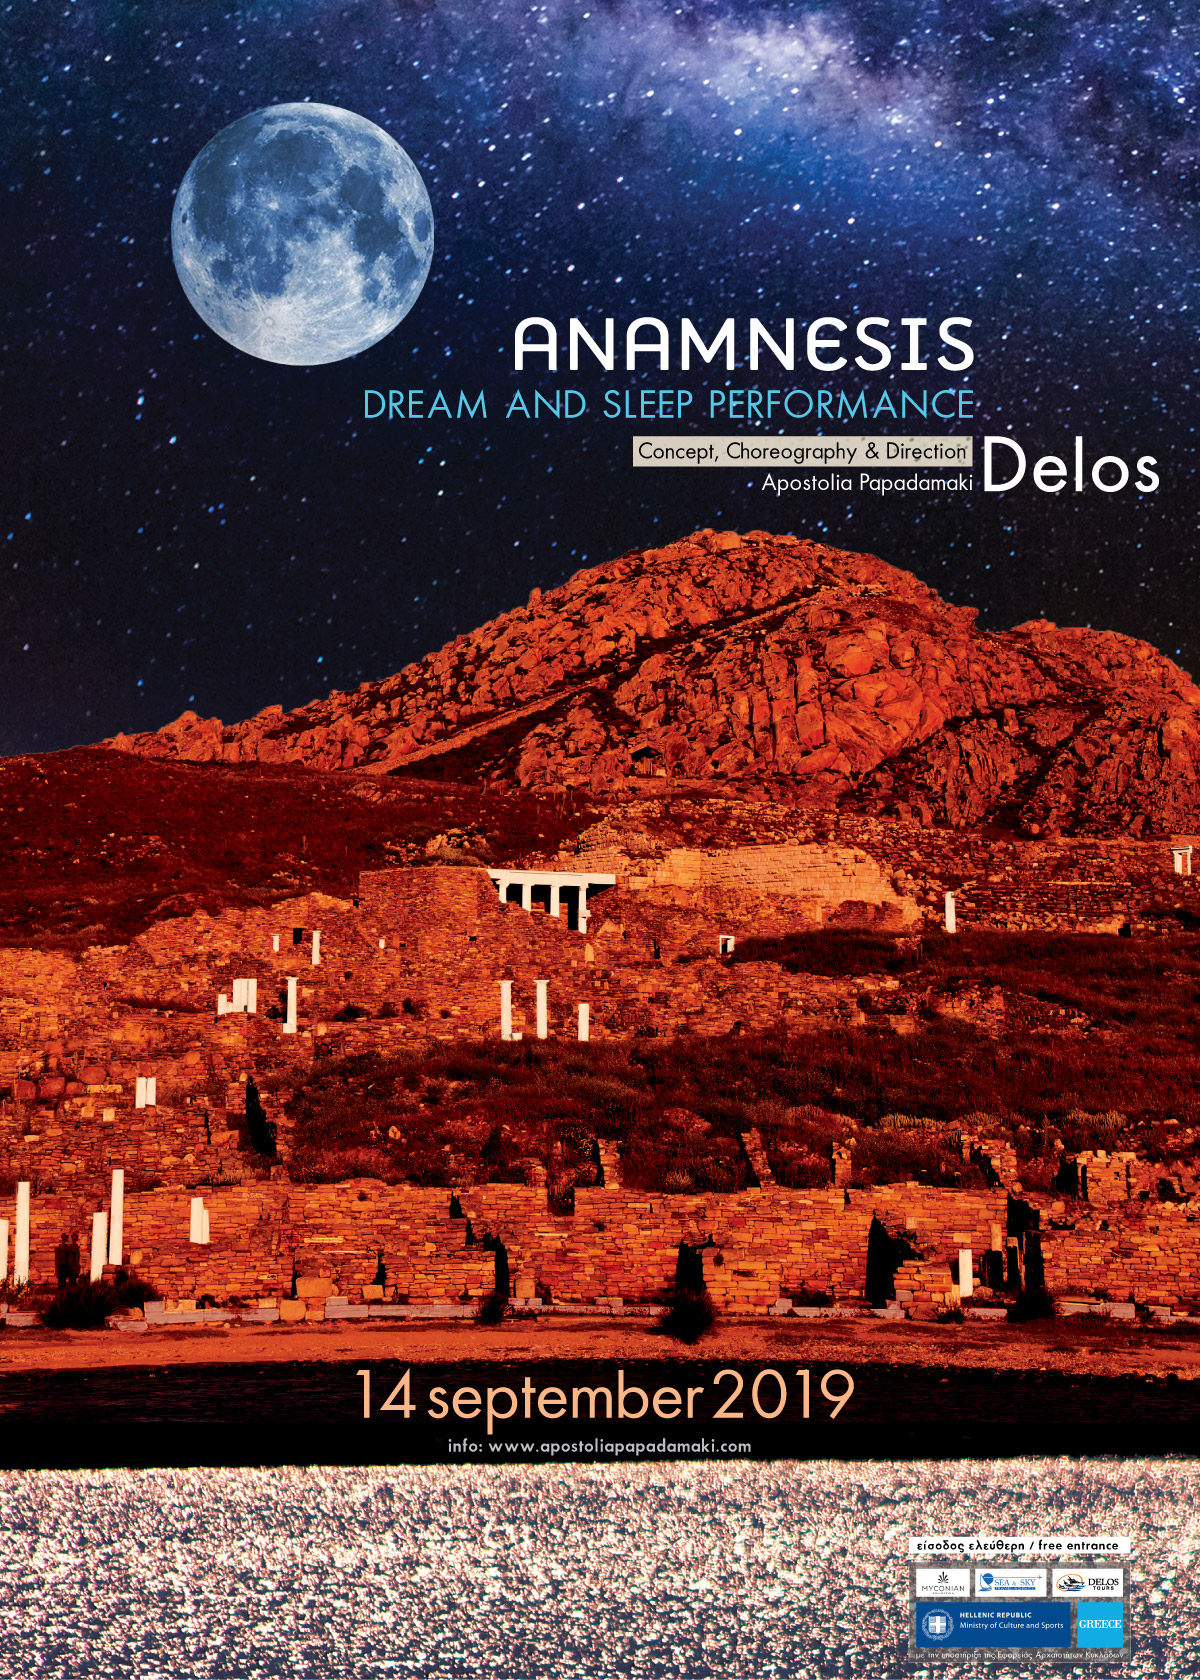 ANAMNESIS Dream Sleep Performance Delos